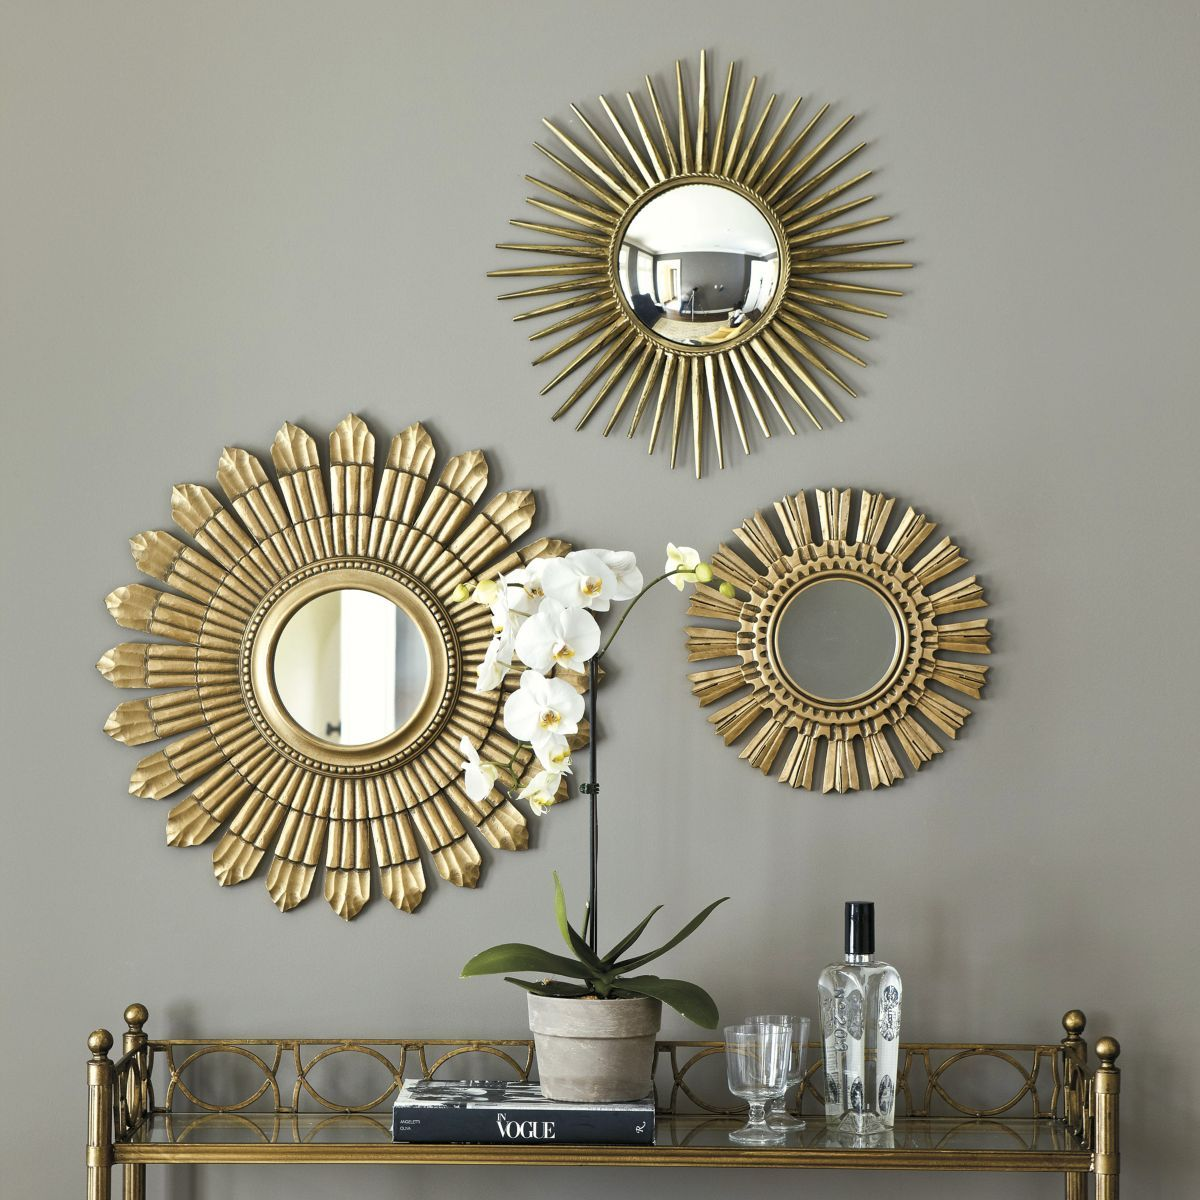 Suzanne Kasler Sunburst Mirror 4 Ballard Designs Sunburst Wall Decor Gold Sunburst Mirror Mirror Wall Decor